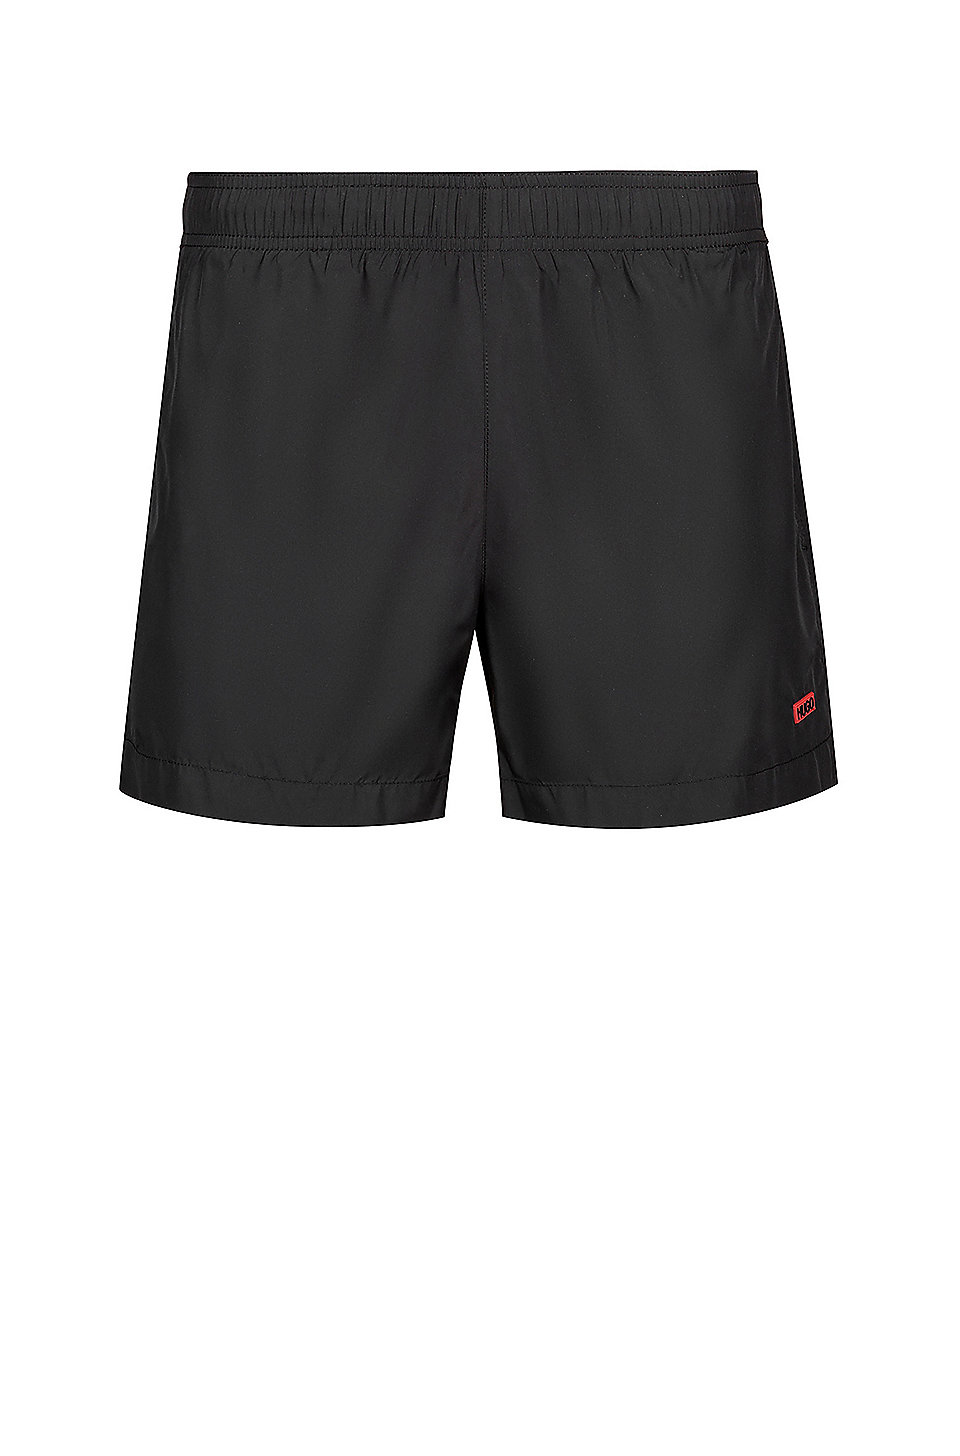 53e97c718 HUGO - Quick-drying swim shorts with contrast lining